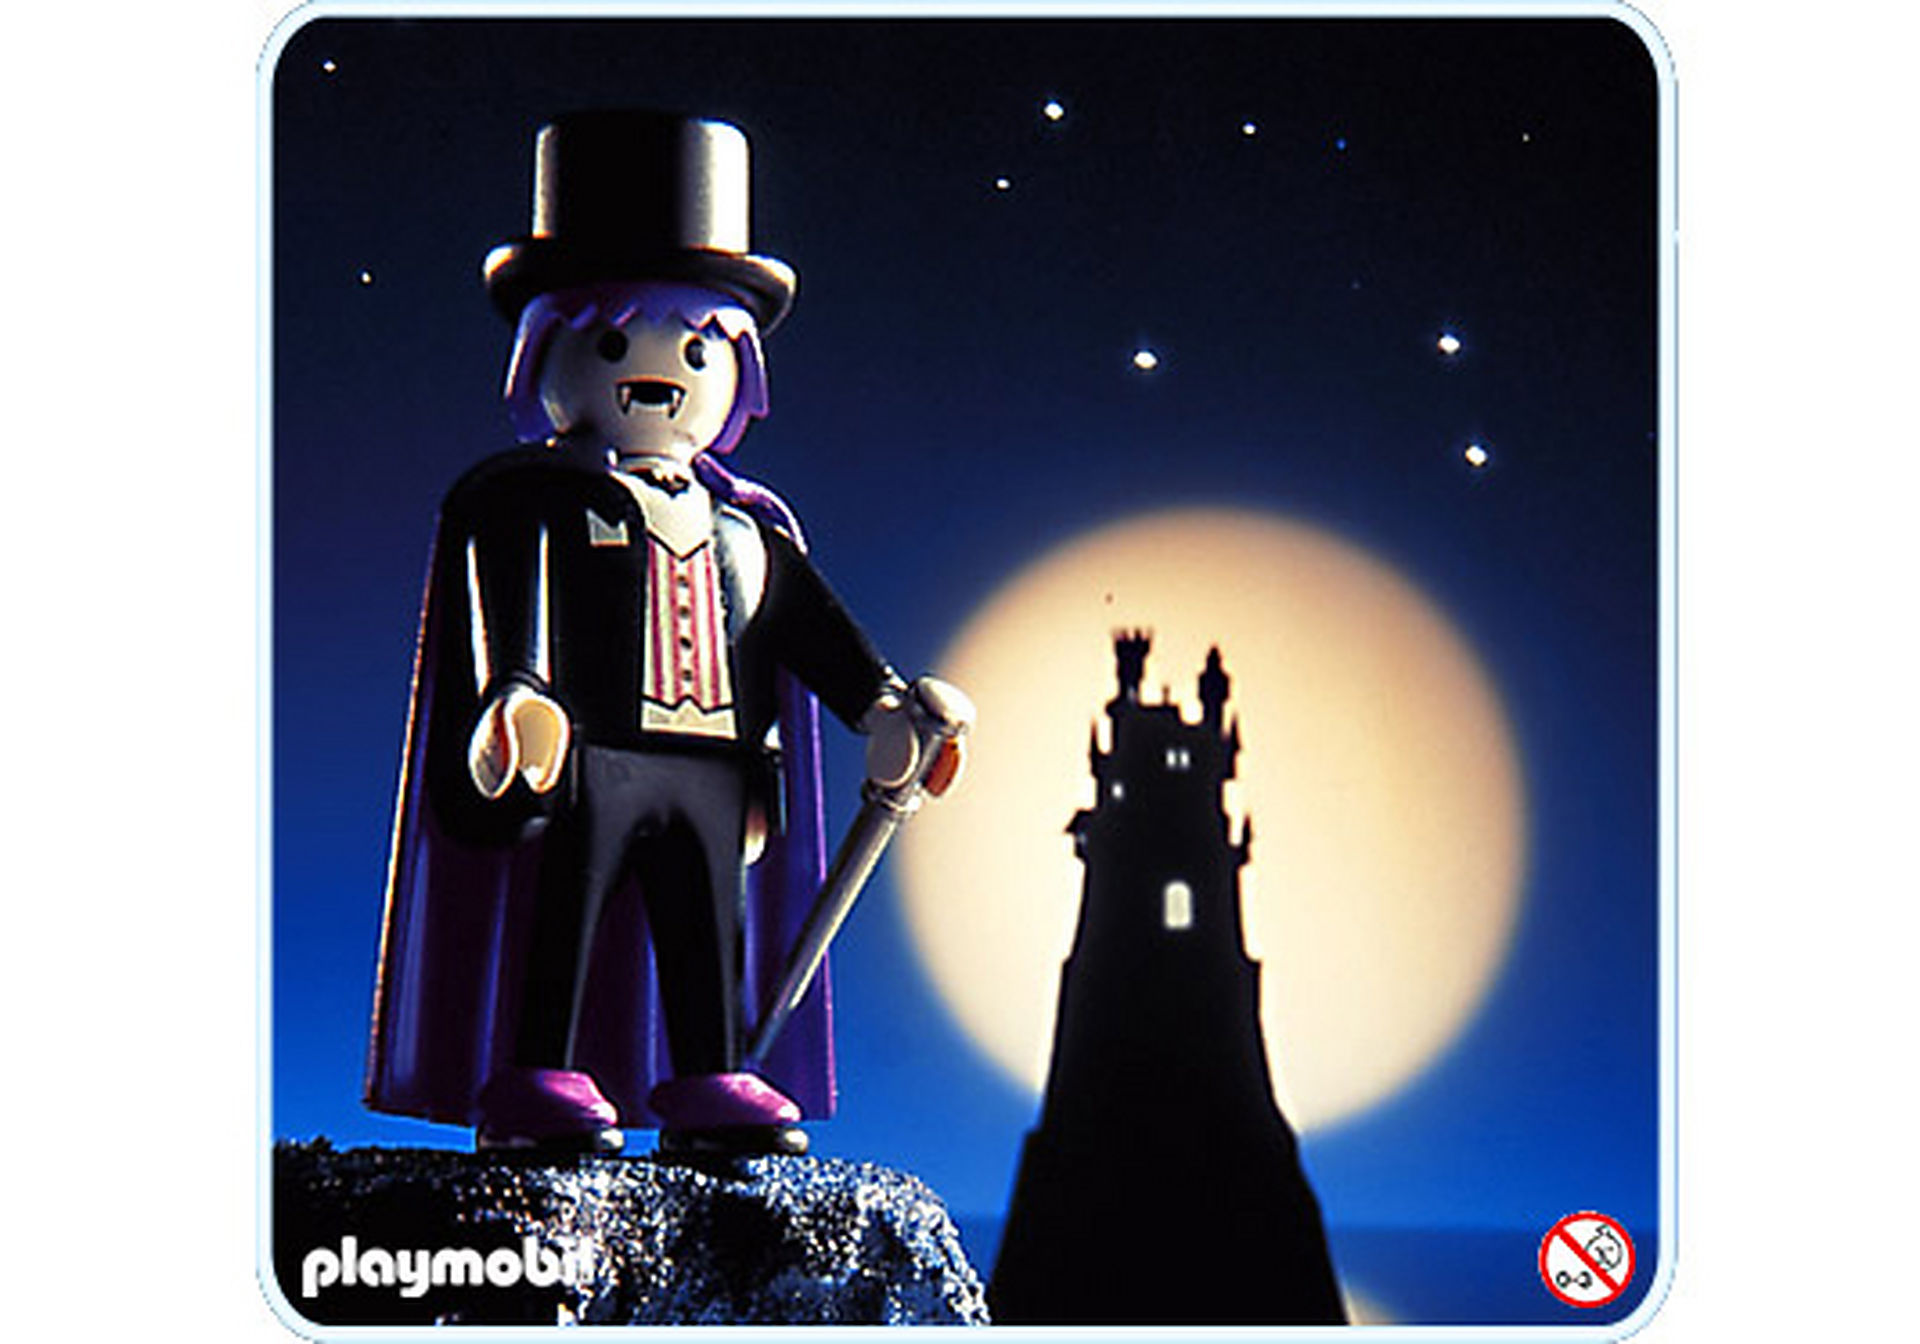 http://media.playmobil.com/i/playmobil/4506-A_product_detail/Dracula